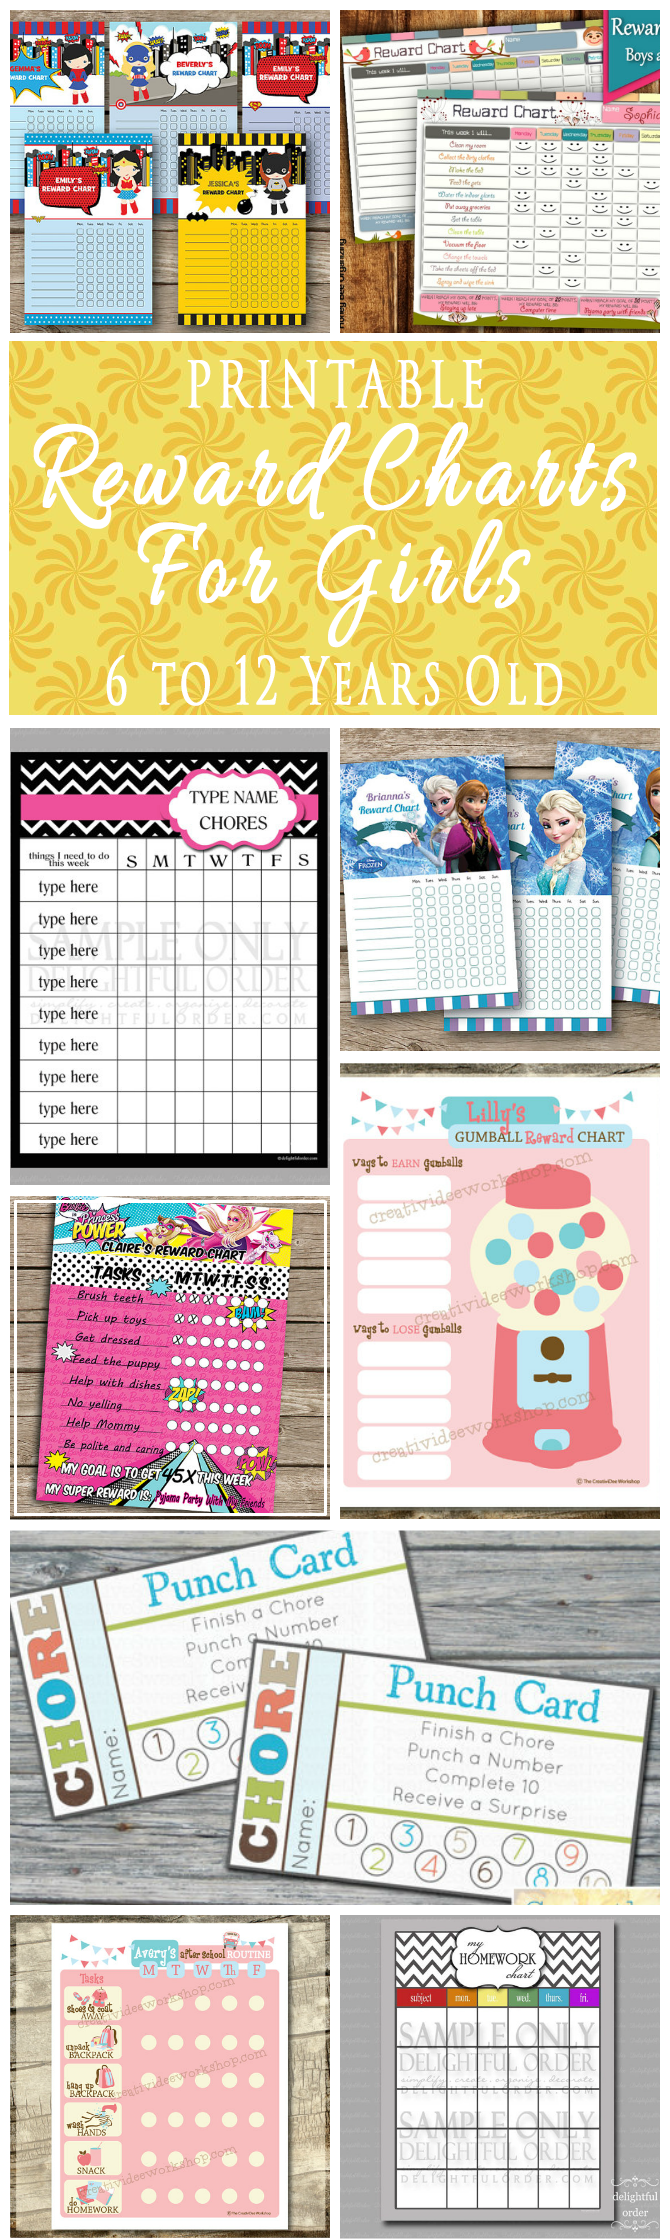 Printable Reward Charts For Kids 6 To 12 Years Old   Reward Charts, Behavior  Cahrts  Kids Behavior Chart Template